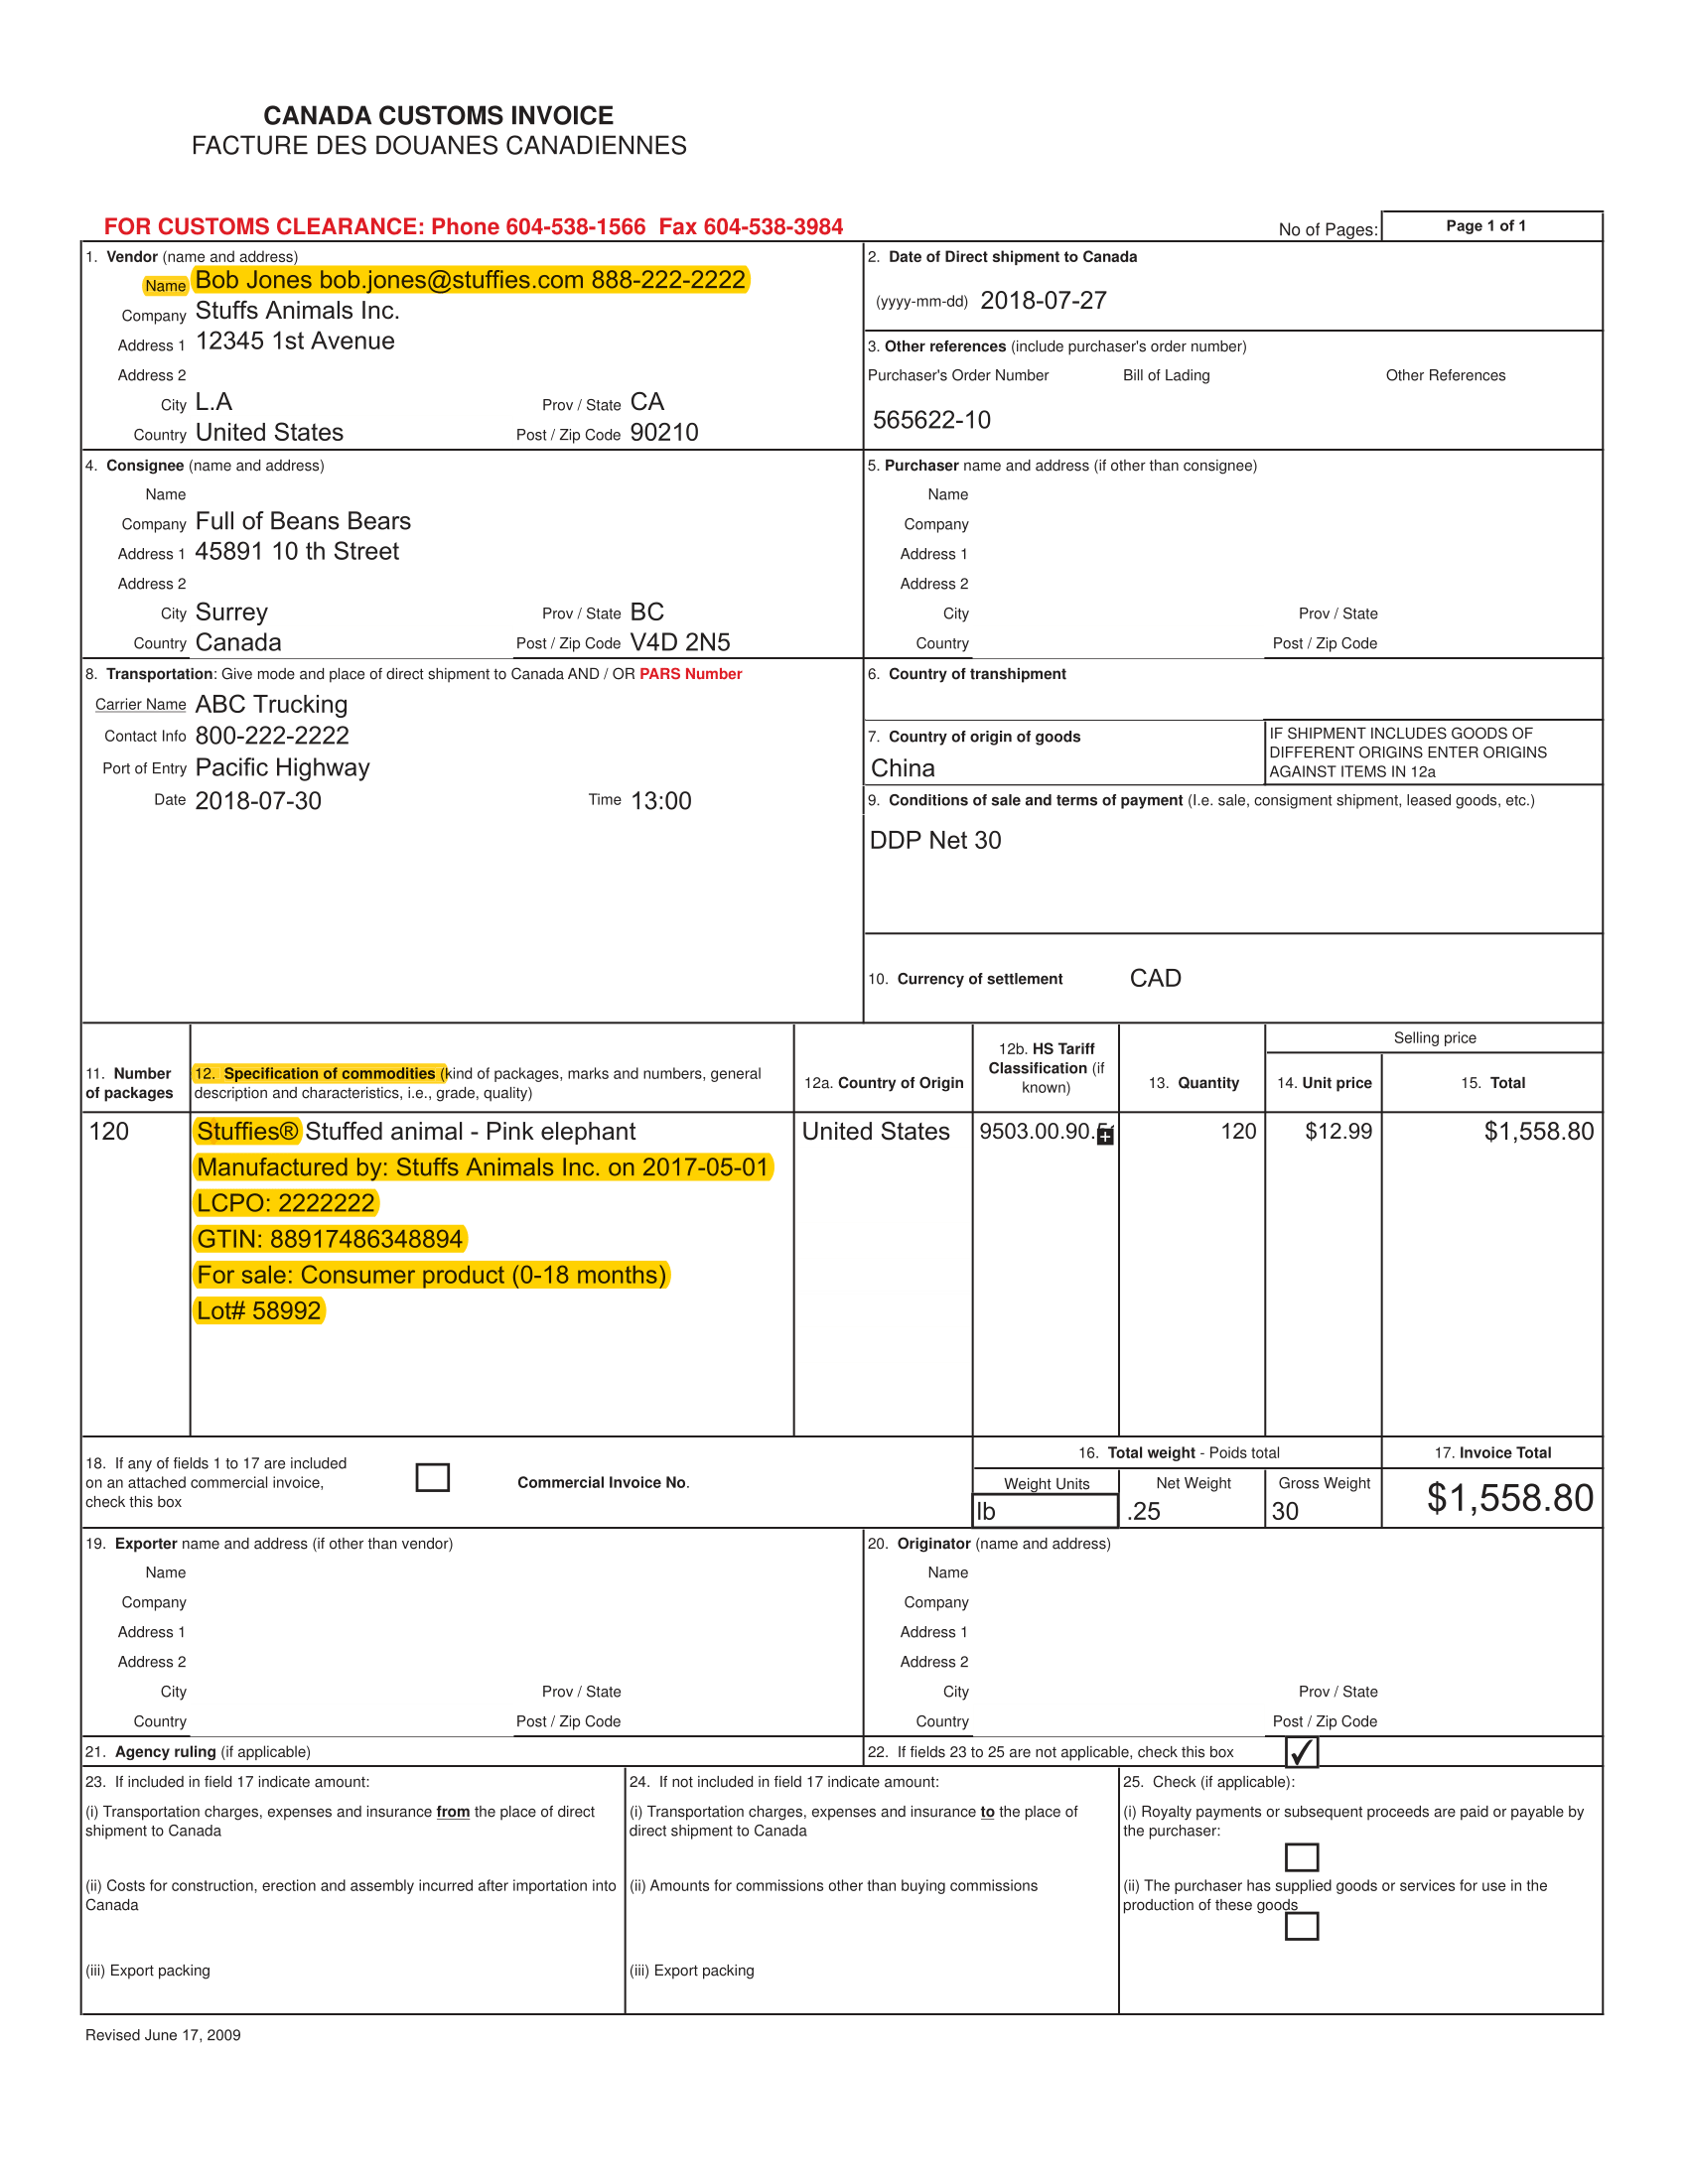 Canada Customs Invoice Example 1